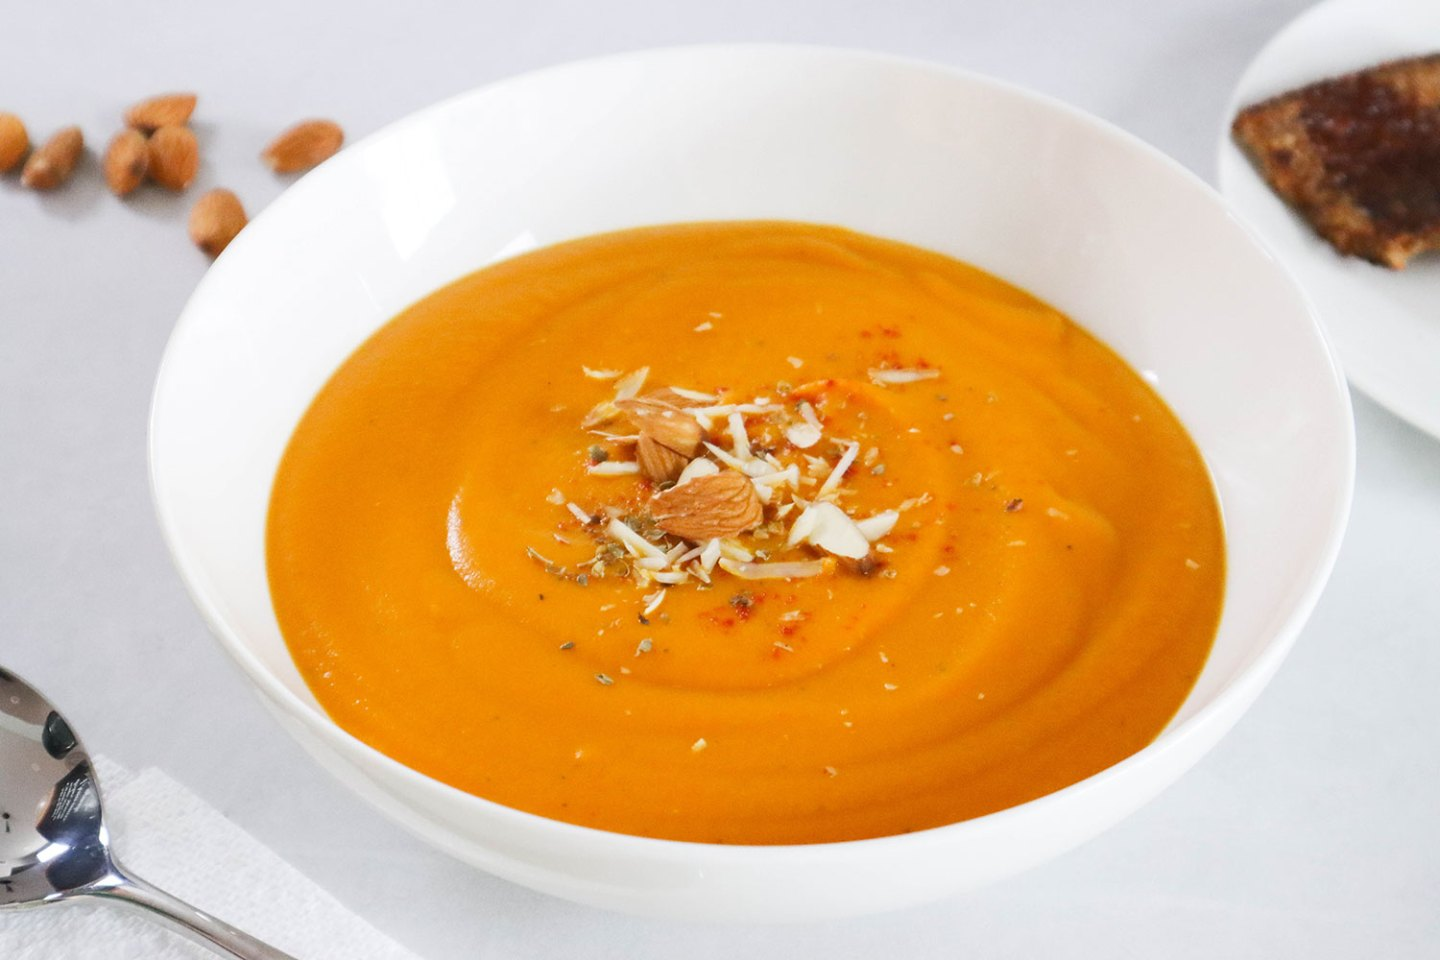 Roasted butternut squash, pepper, carrot & onion soup (dairy-free, gluten-free, vegan)